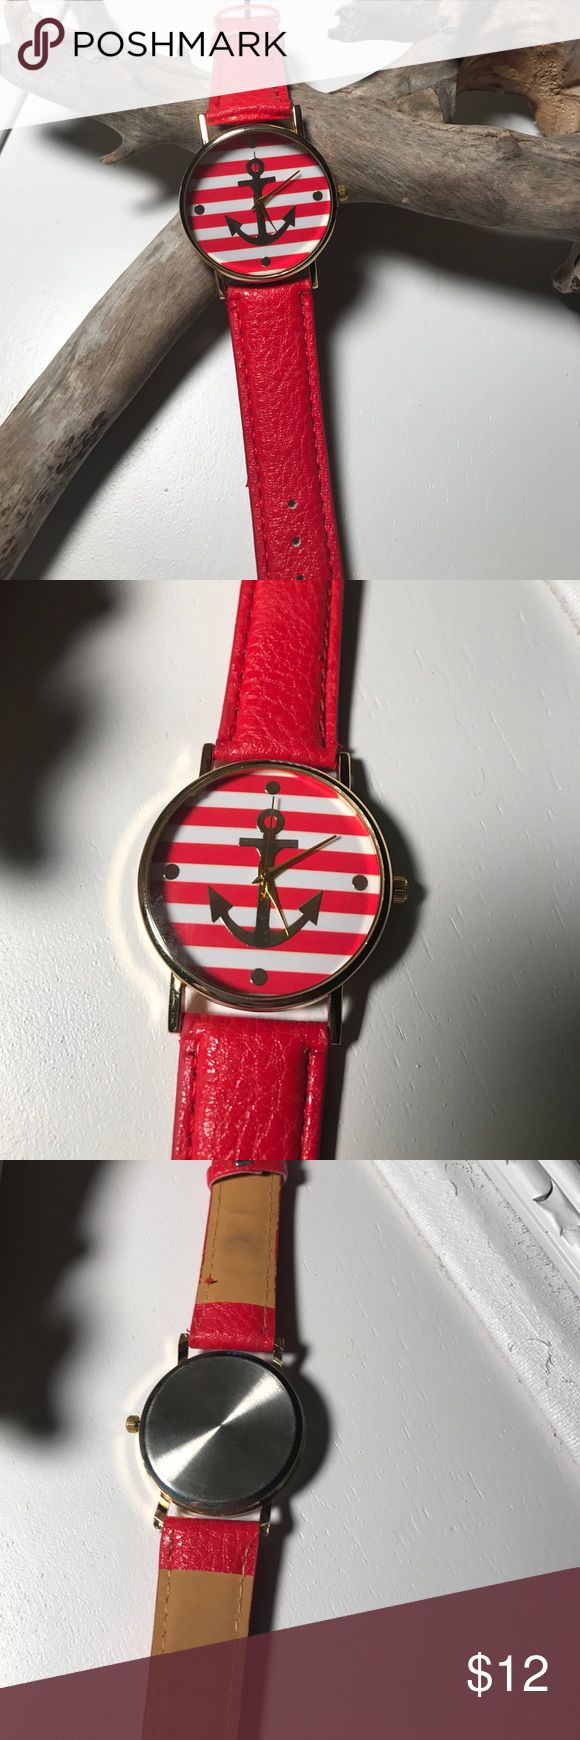 "Fashion Watch Fashion Anchor Watch with Red Band Never Worn However Some  Markings from Being on Display. Face is 1 1/2"" in Diameter Accessories Watches"